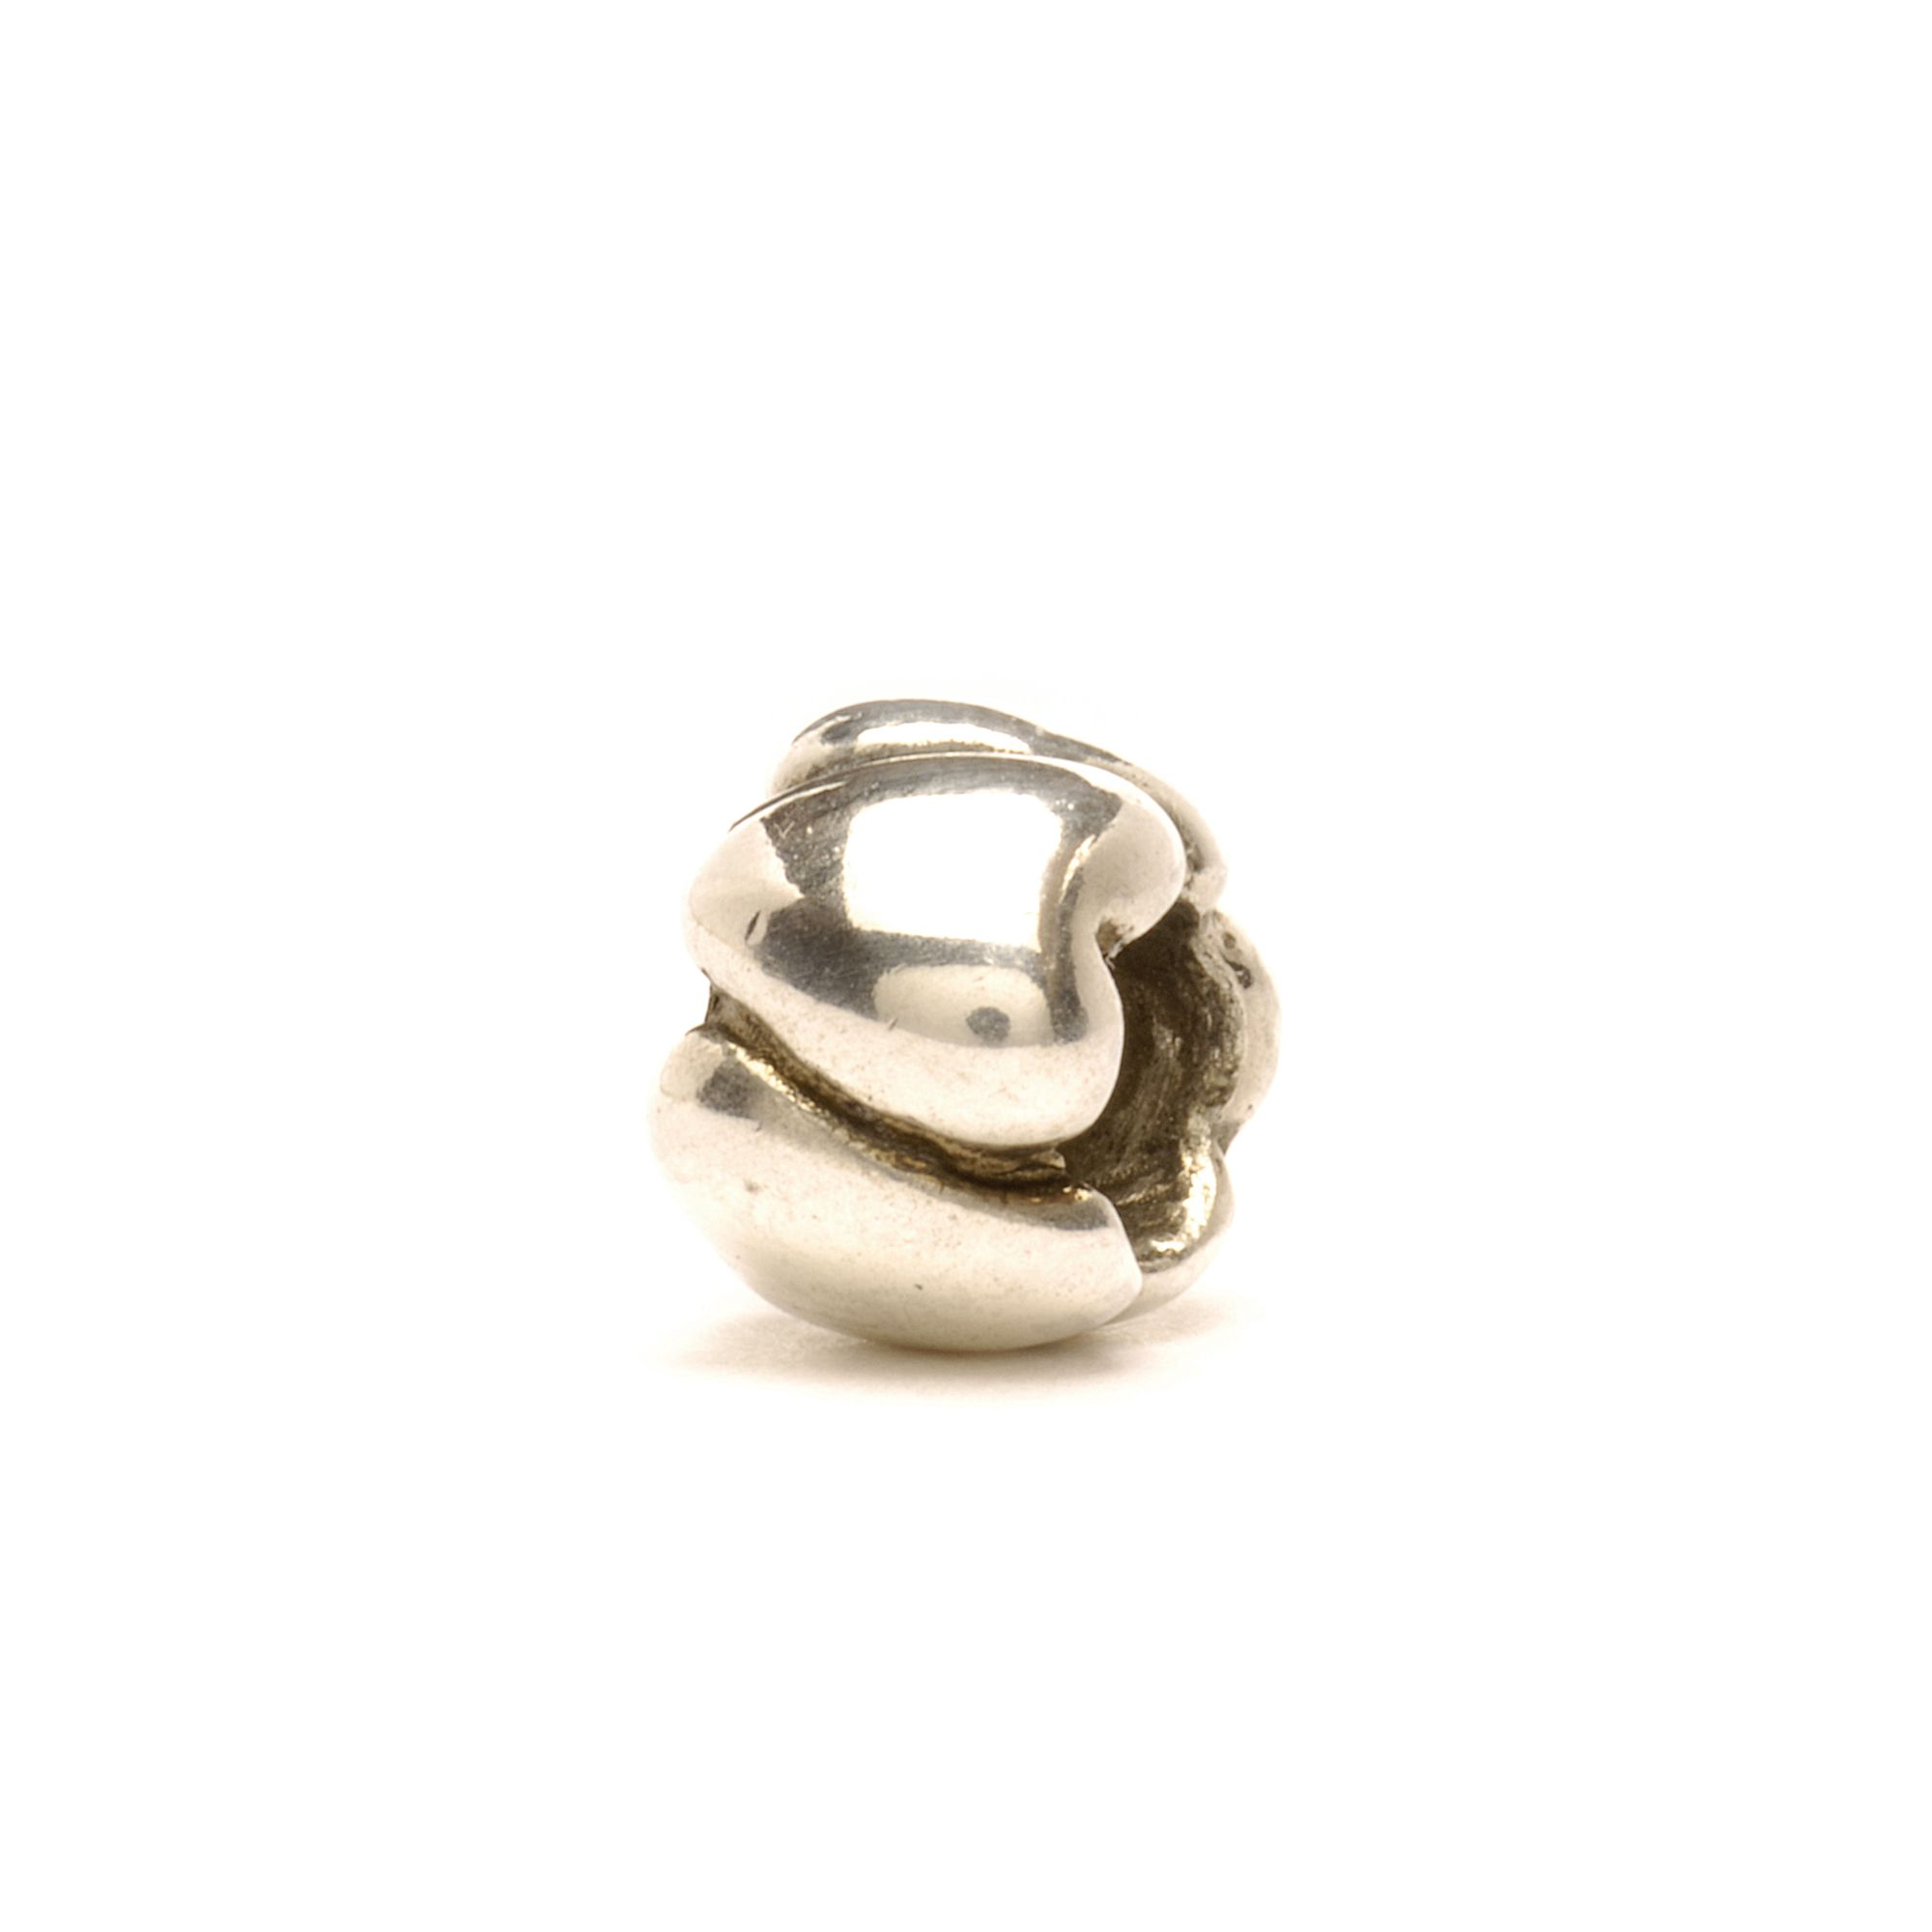 Small Hearts silver charm bead